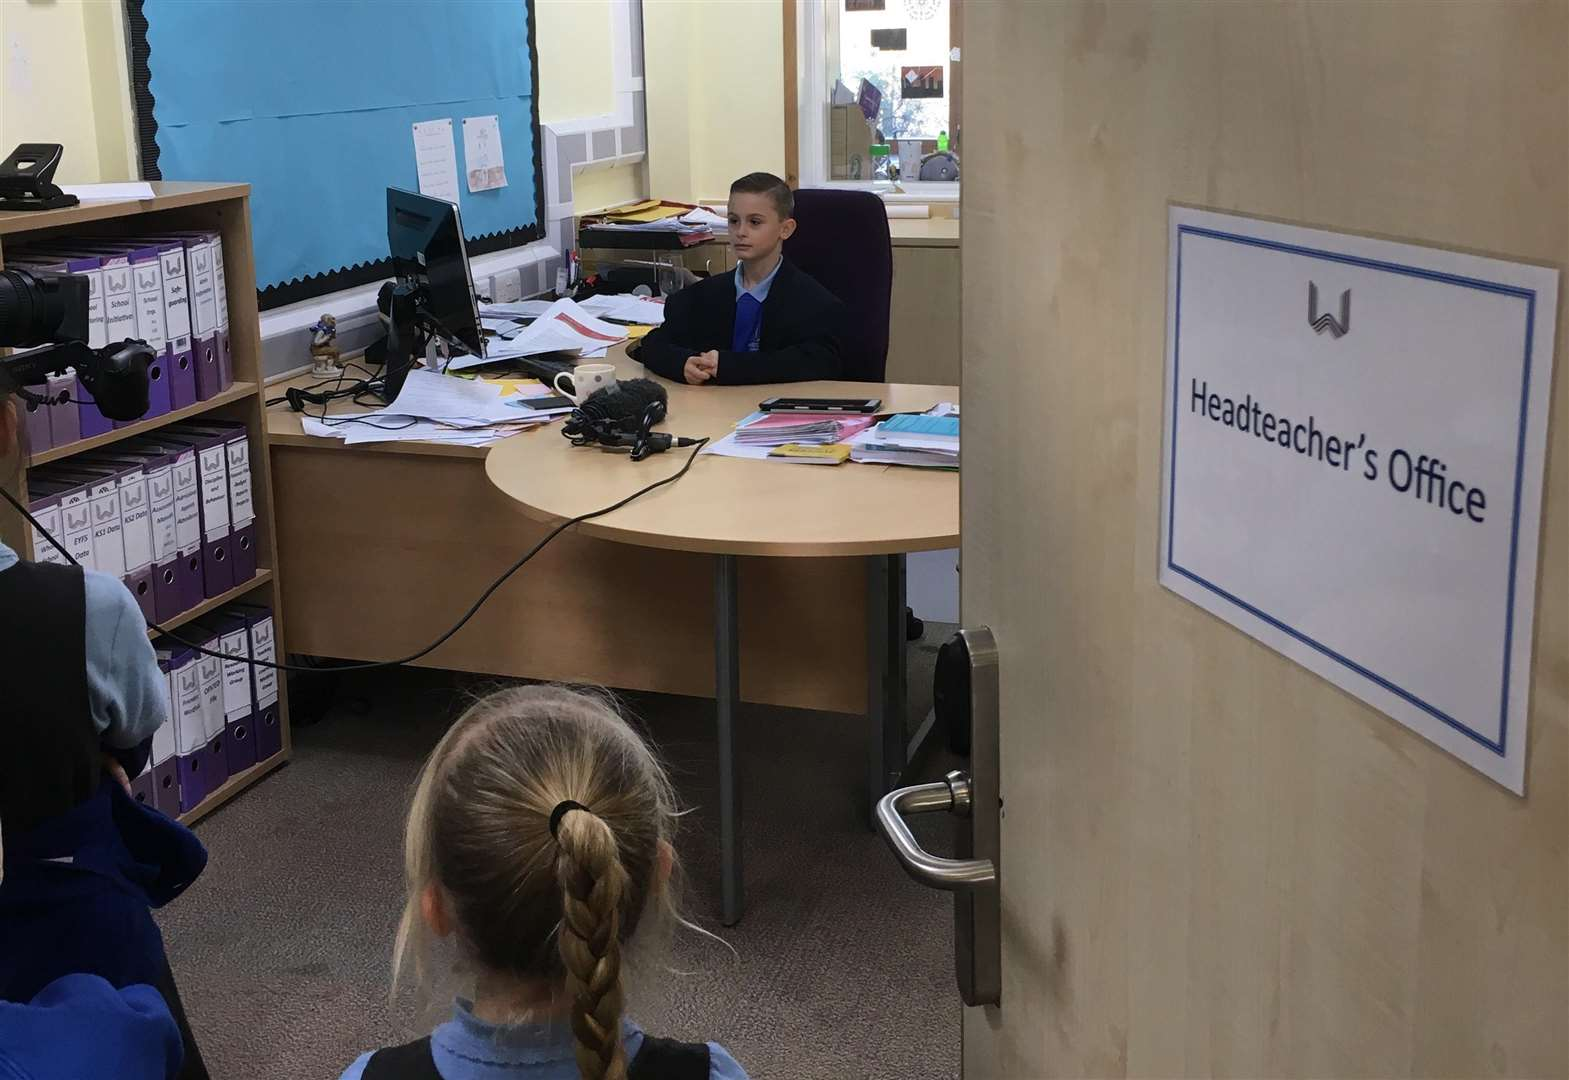 Recruitment video made by primary school in search for new headteacher